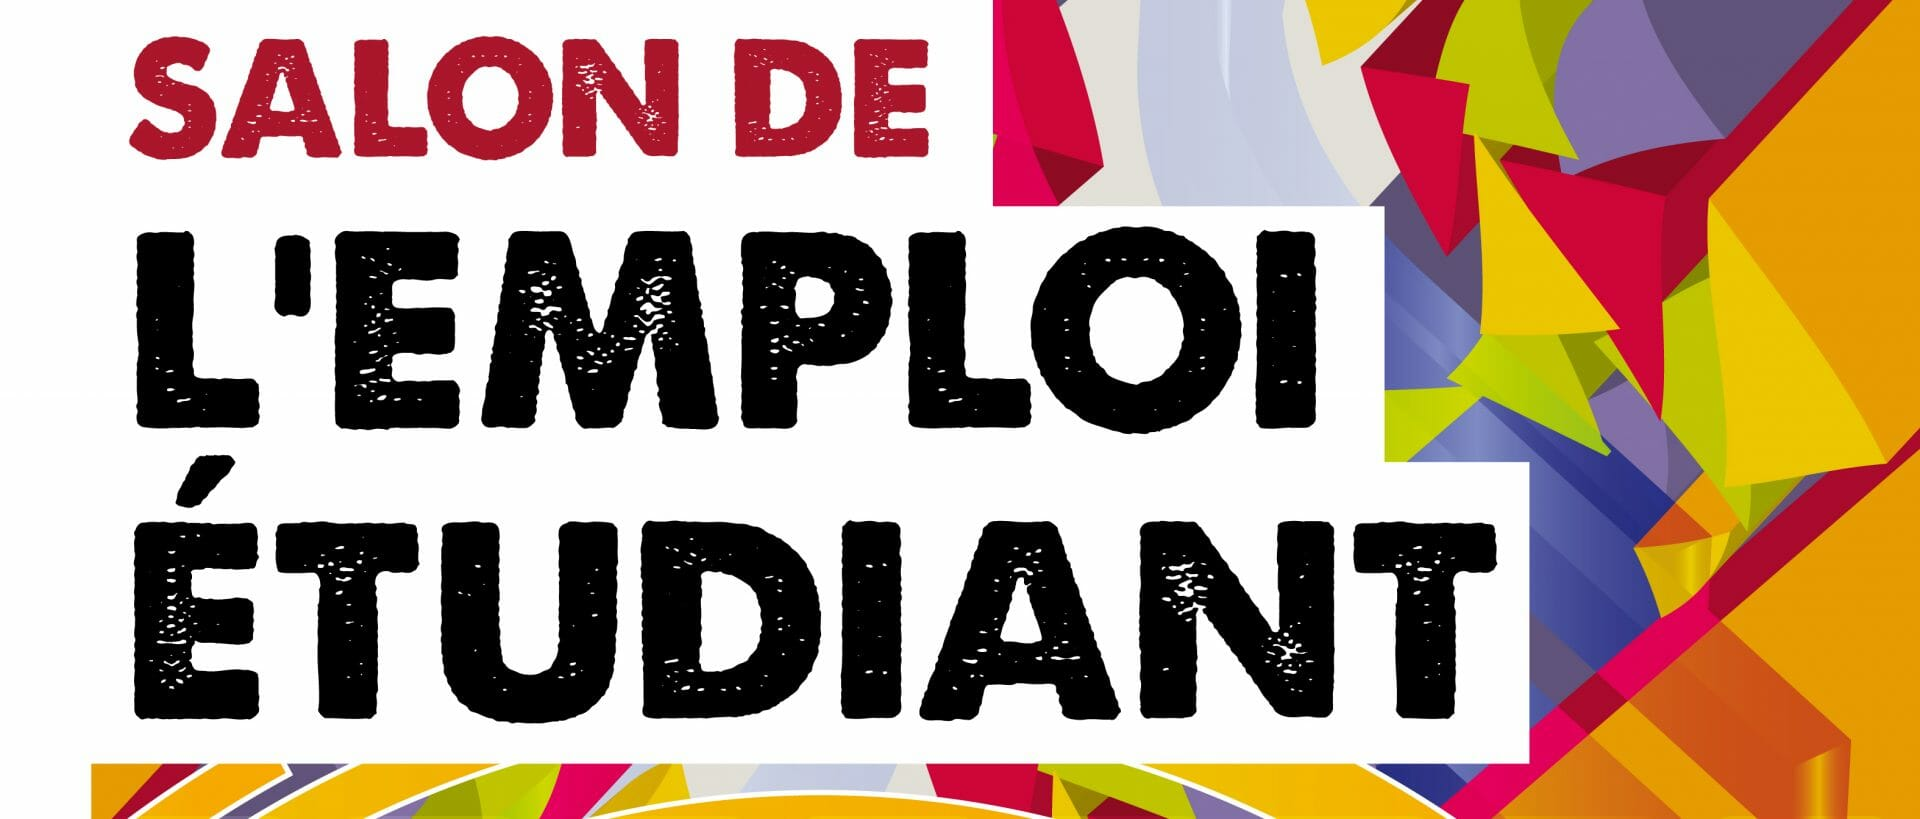 Salon de l emploi tudiant 2016 cje th r se de blainville for Salons de l emploi